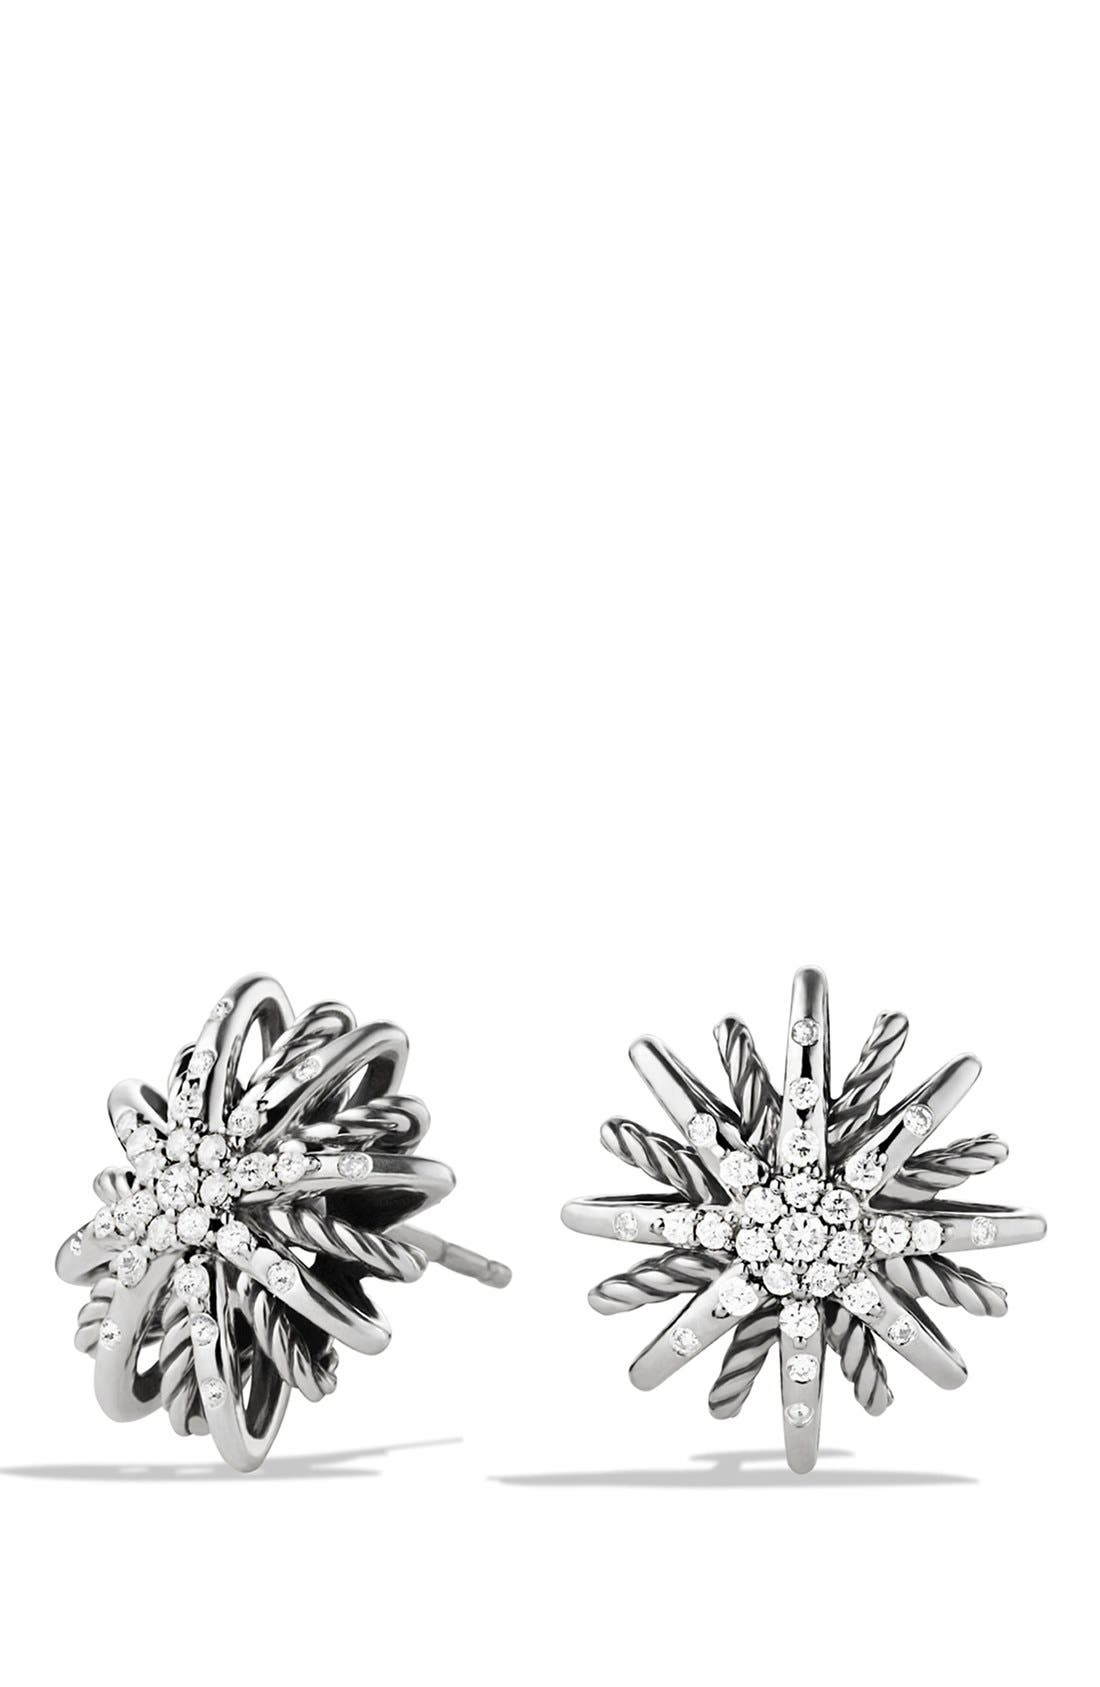 'Starburst' Small Earrings with Diamonds,                             Main thumbnail 1, color,                             DIAMOND